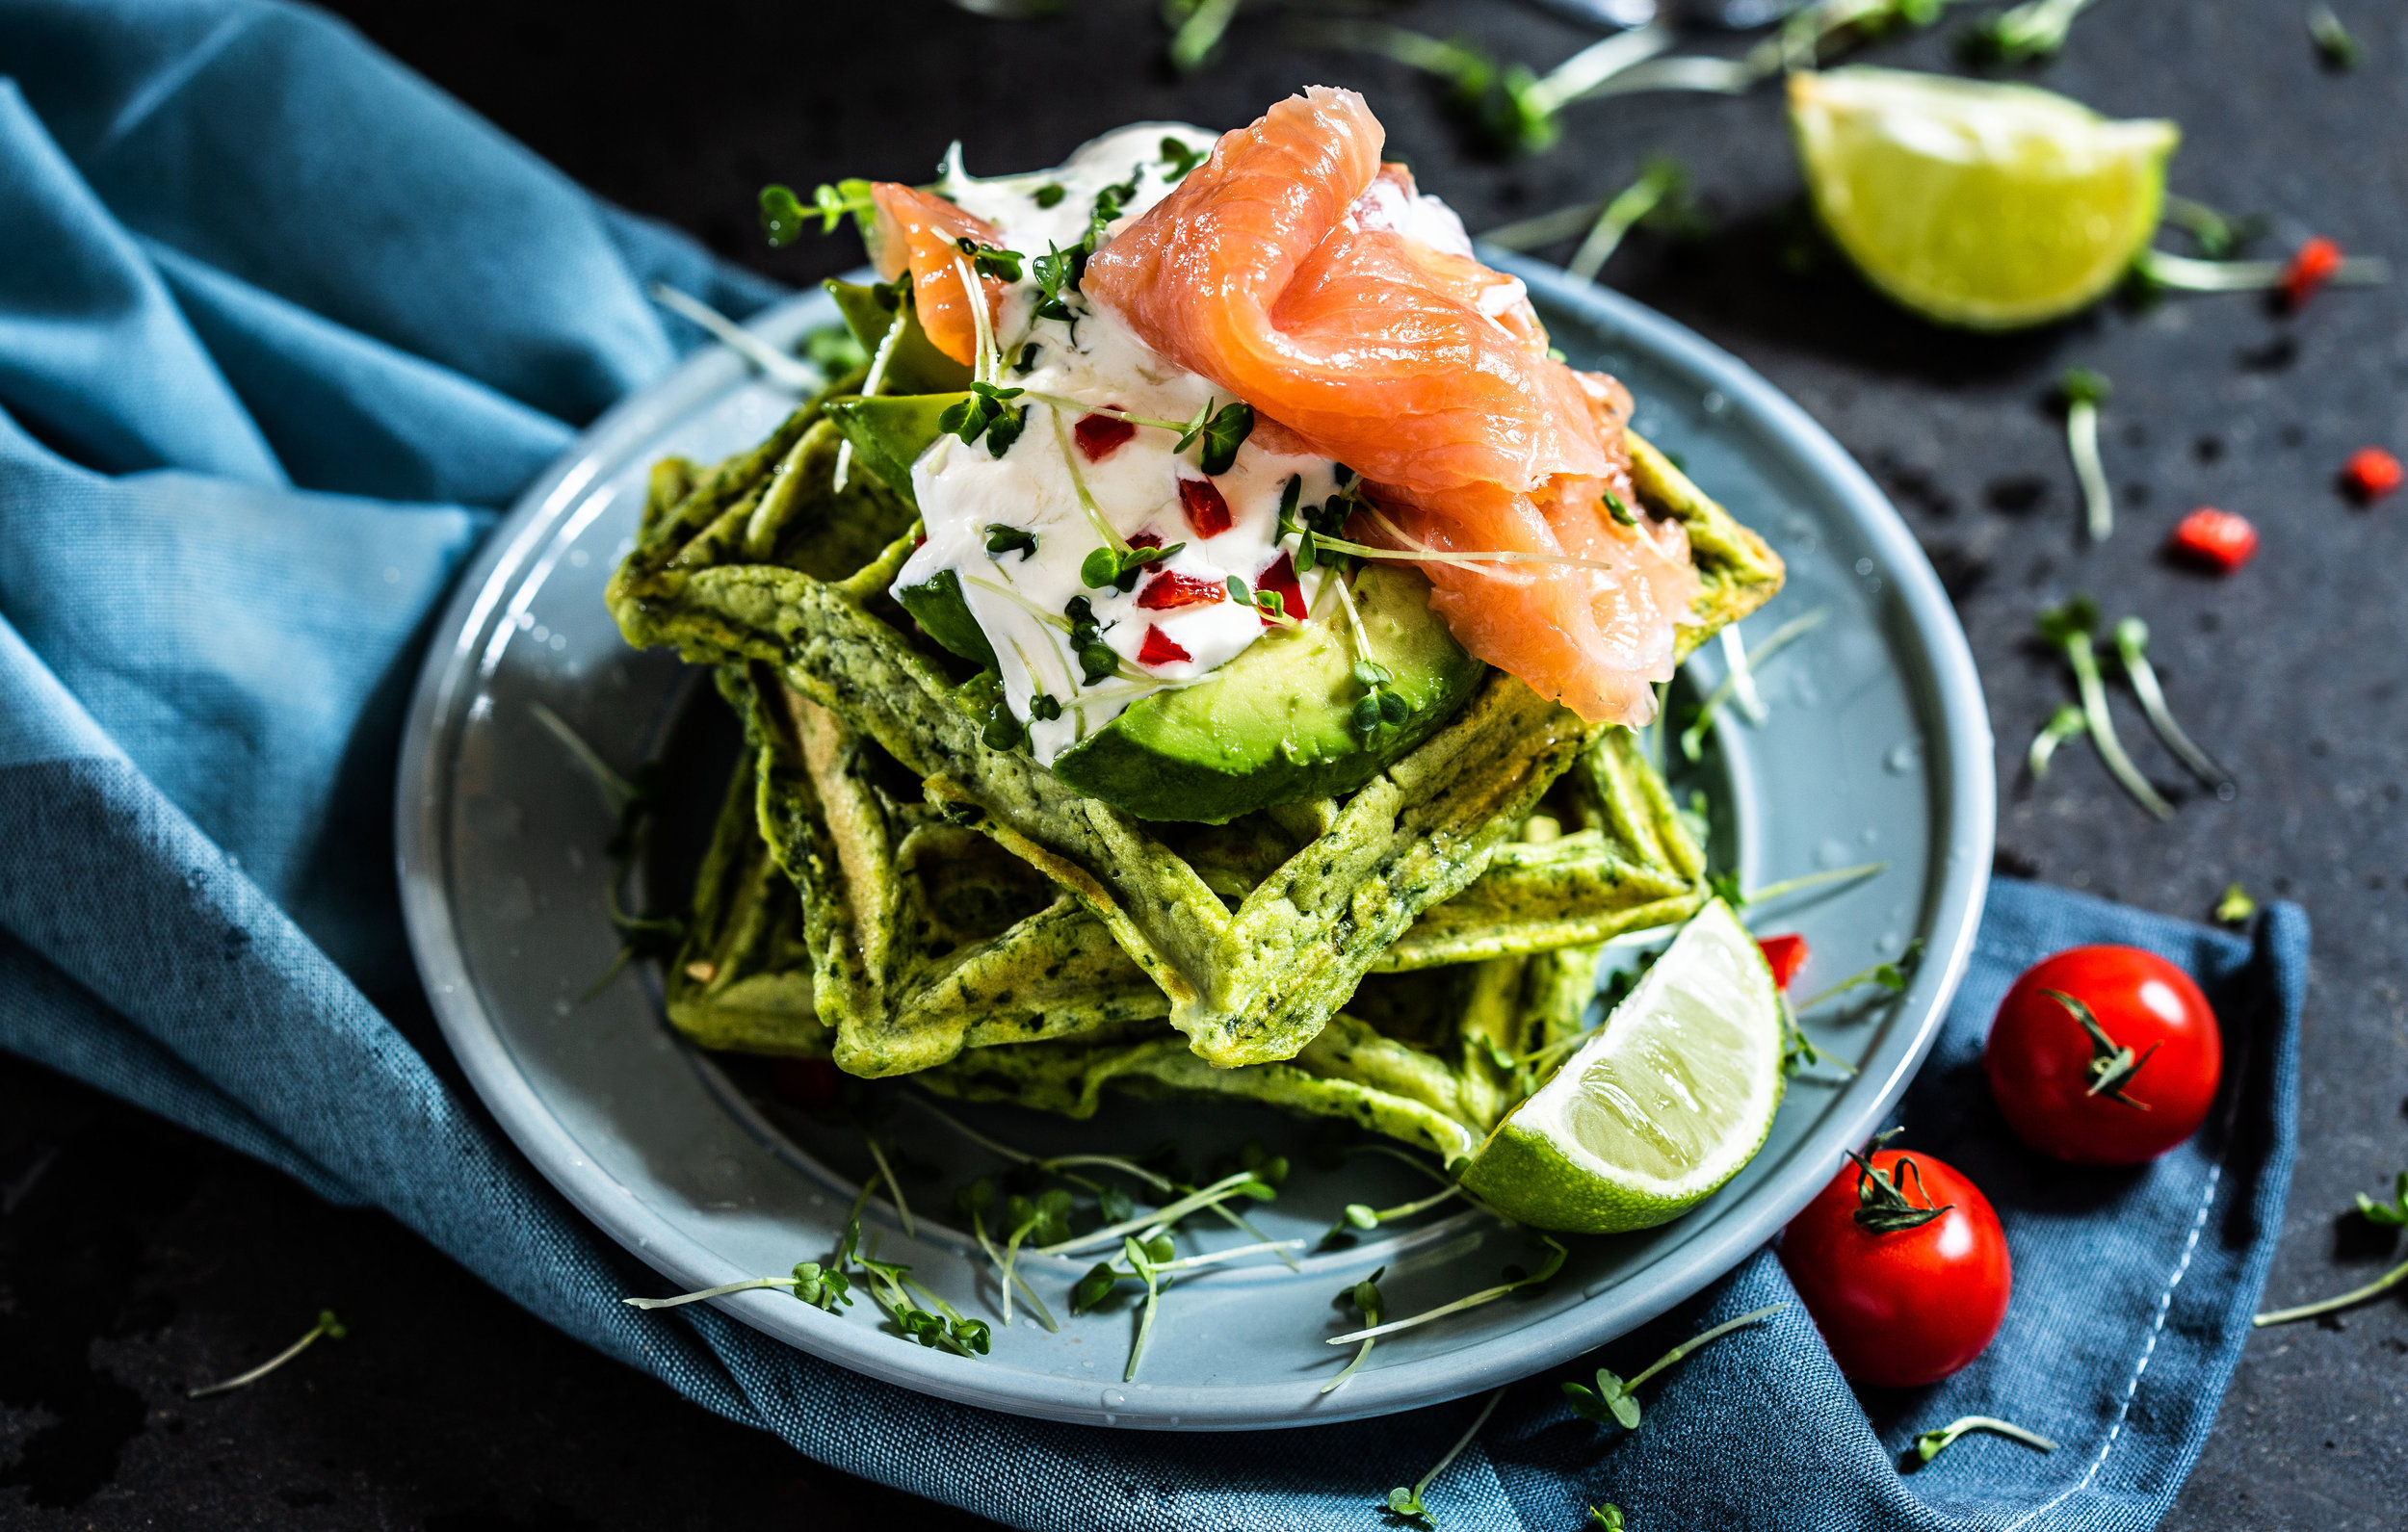 Spinach-waffles-with-smoked-salmon.jpg